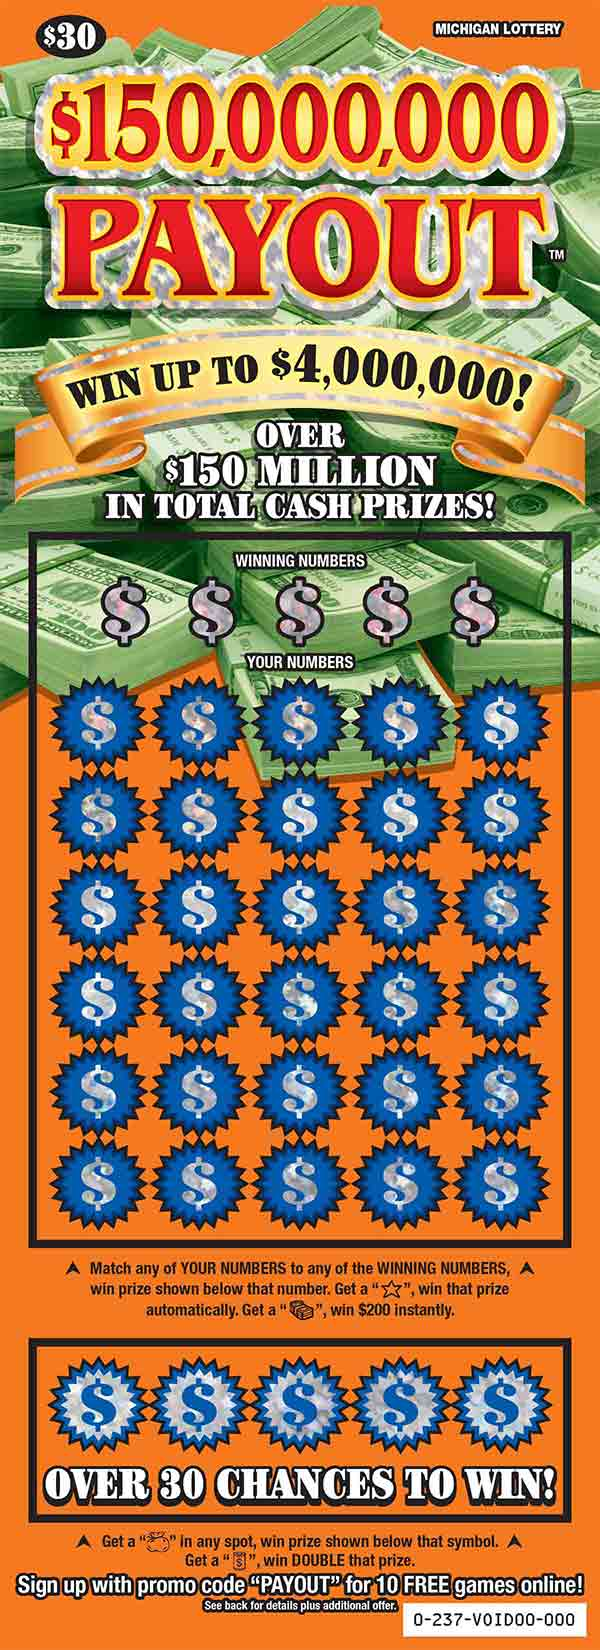 Image of Michigan Lottery scratch off $150,000,000 Payout.